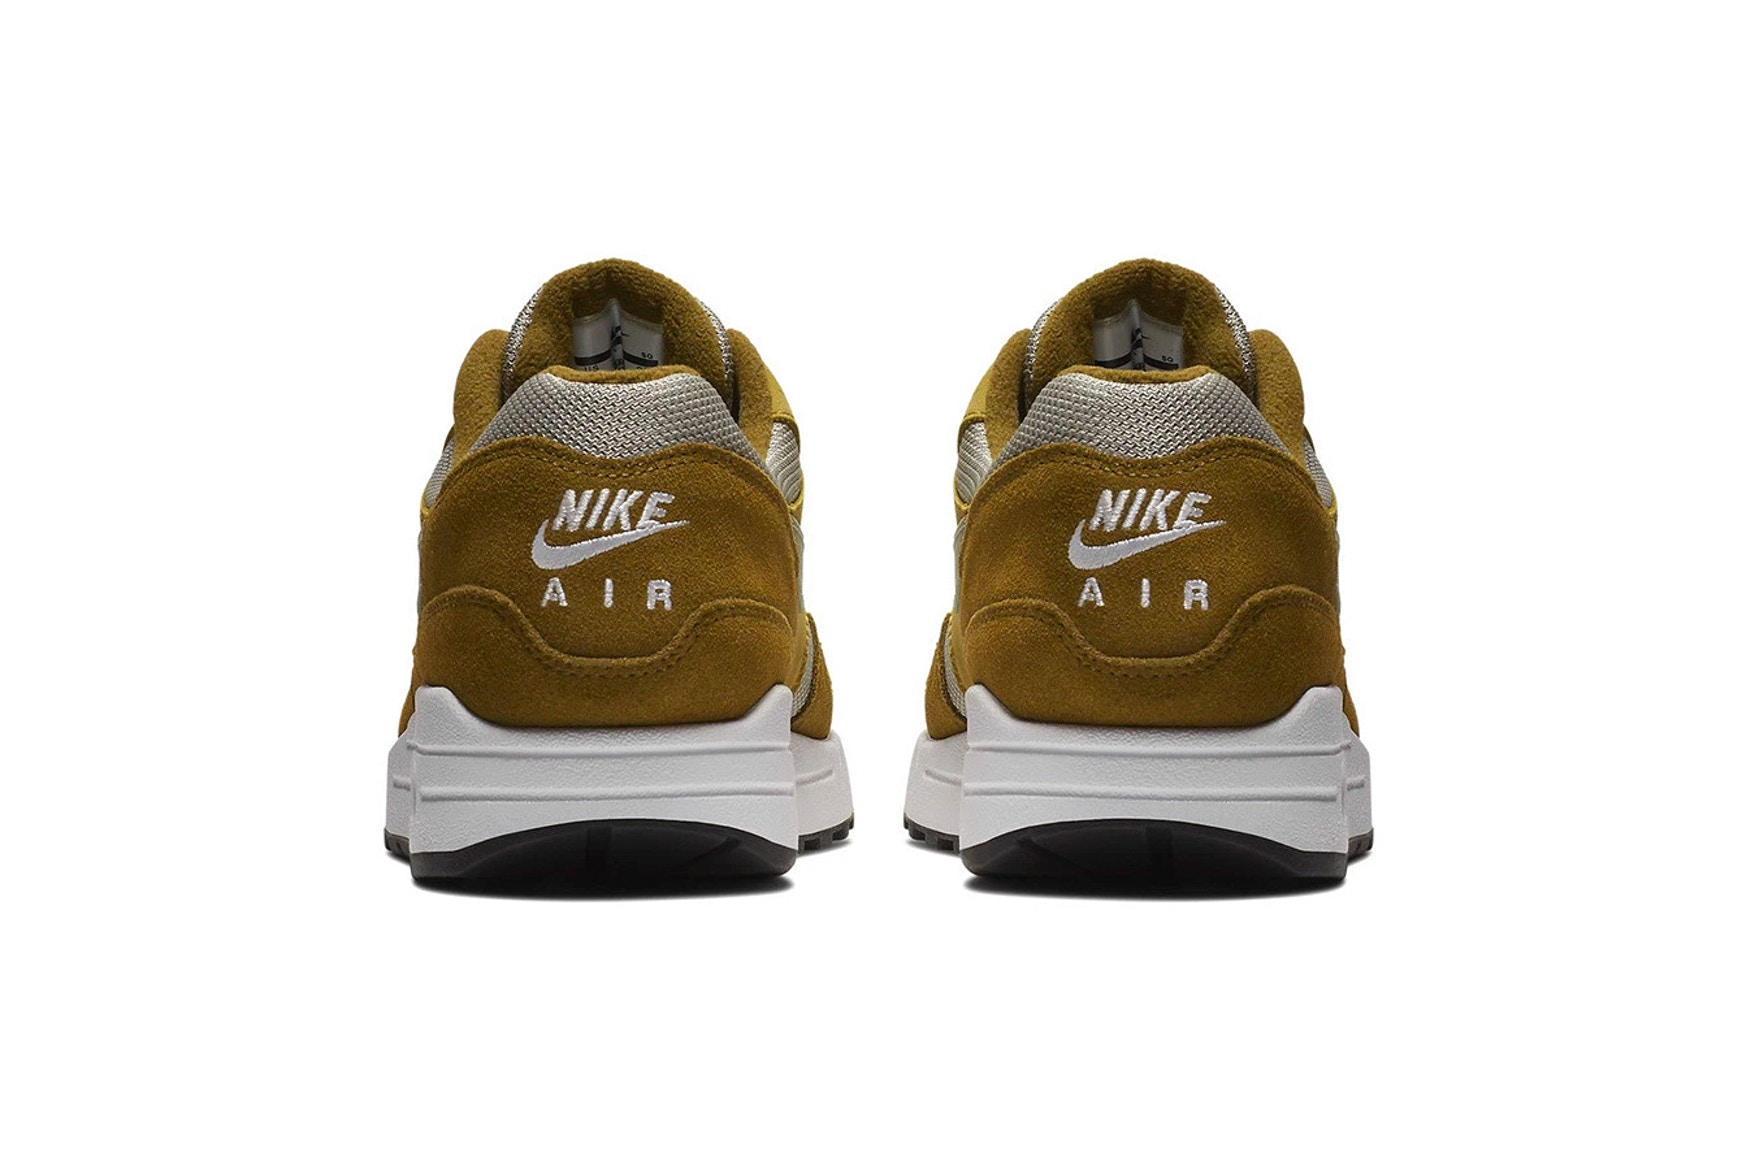 nike-air-max-1-curry-pack-release-date-11